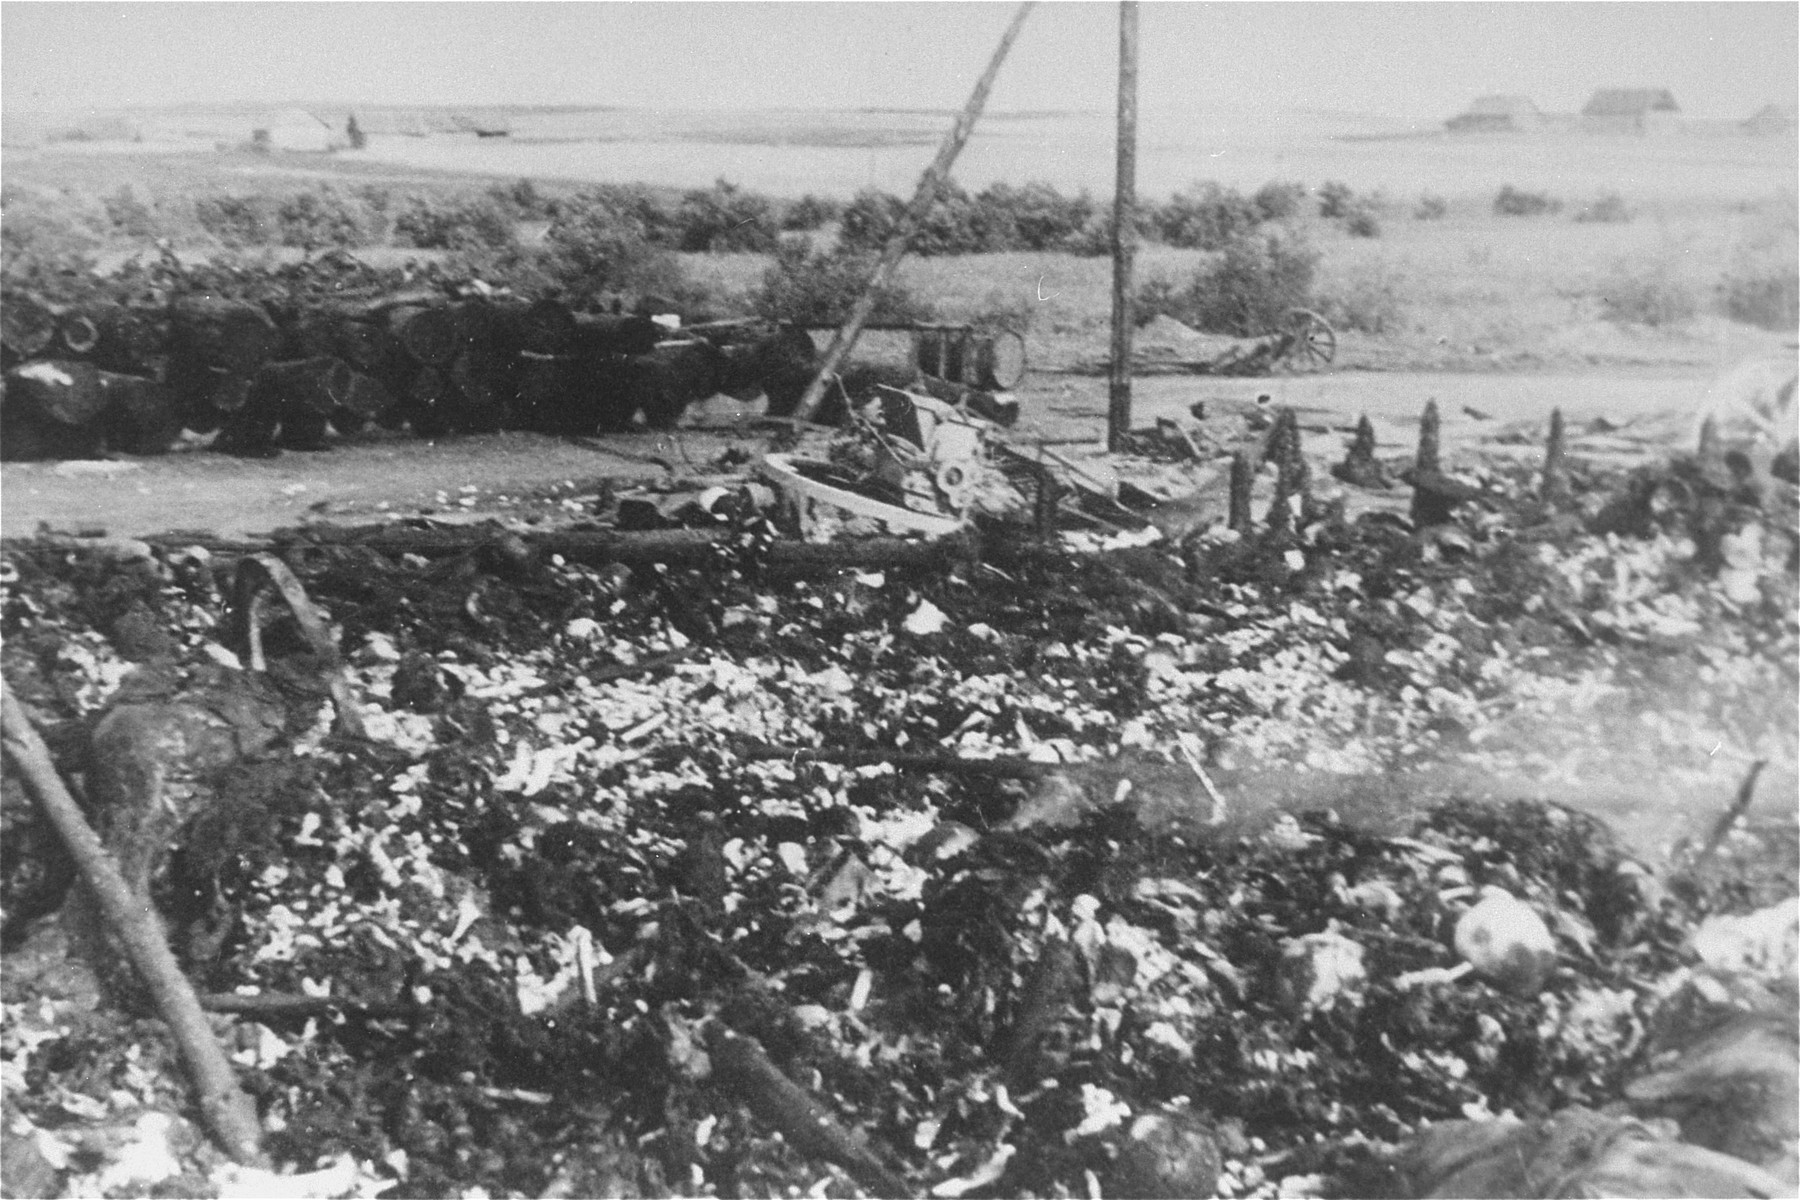 View of the charred remains of Jewish victims burned in a barn by the Germans near the Maly Trostinets concentration camp.